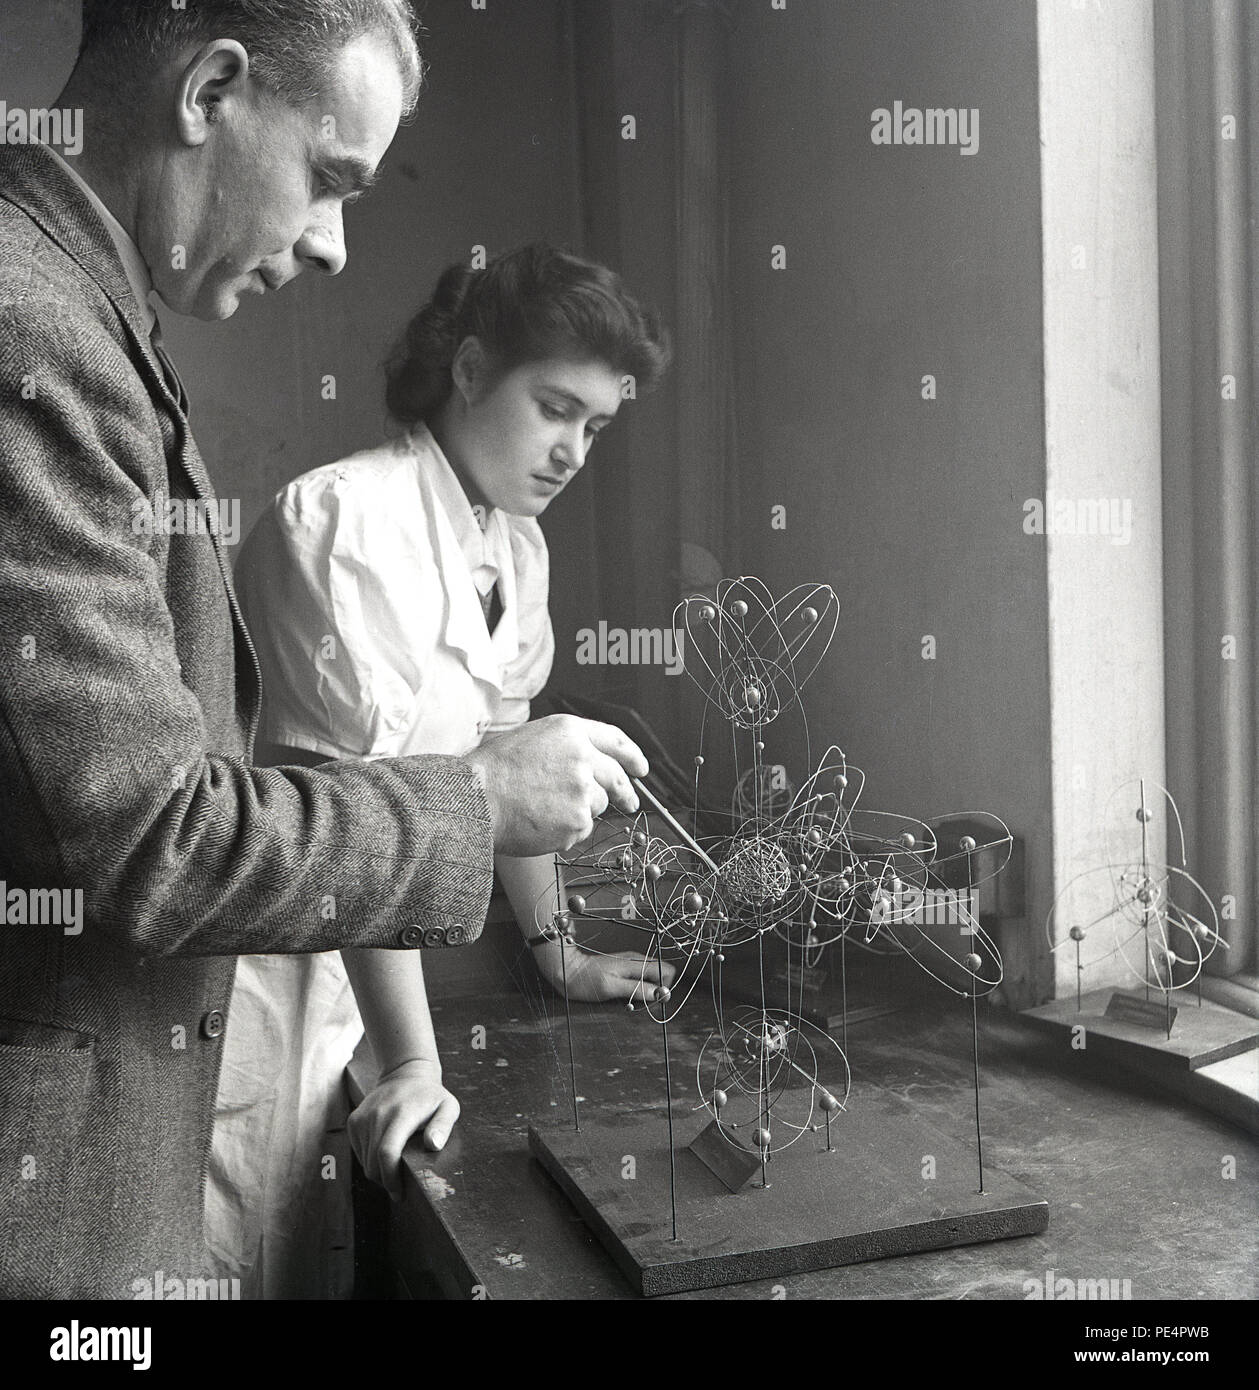 1950s, male university professor teaching the science of physics to a femlale student using a penceil and a metal atom model on a wooden base sat on a workbench, England, UK. - Stock Image